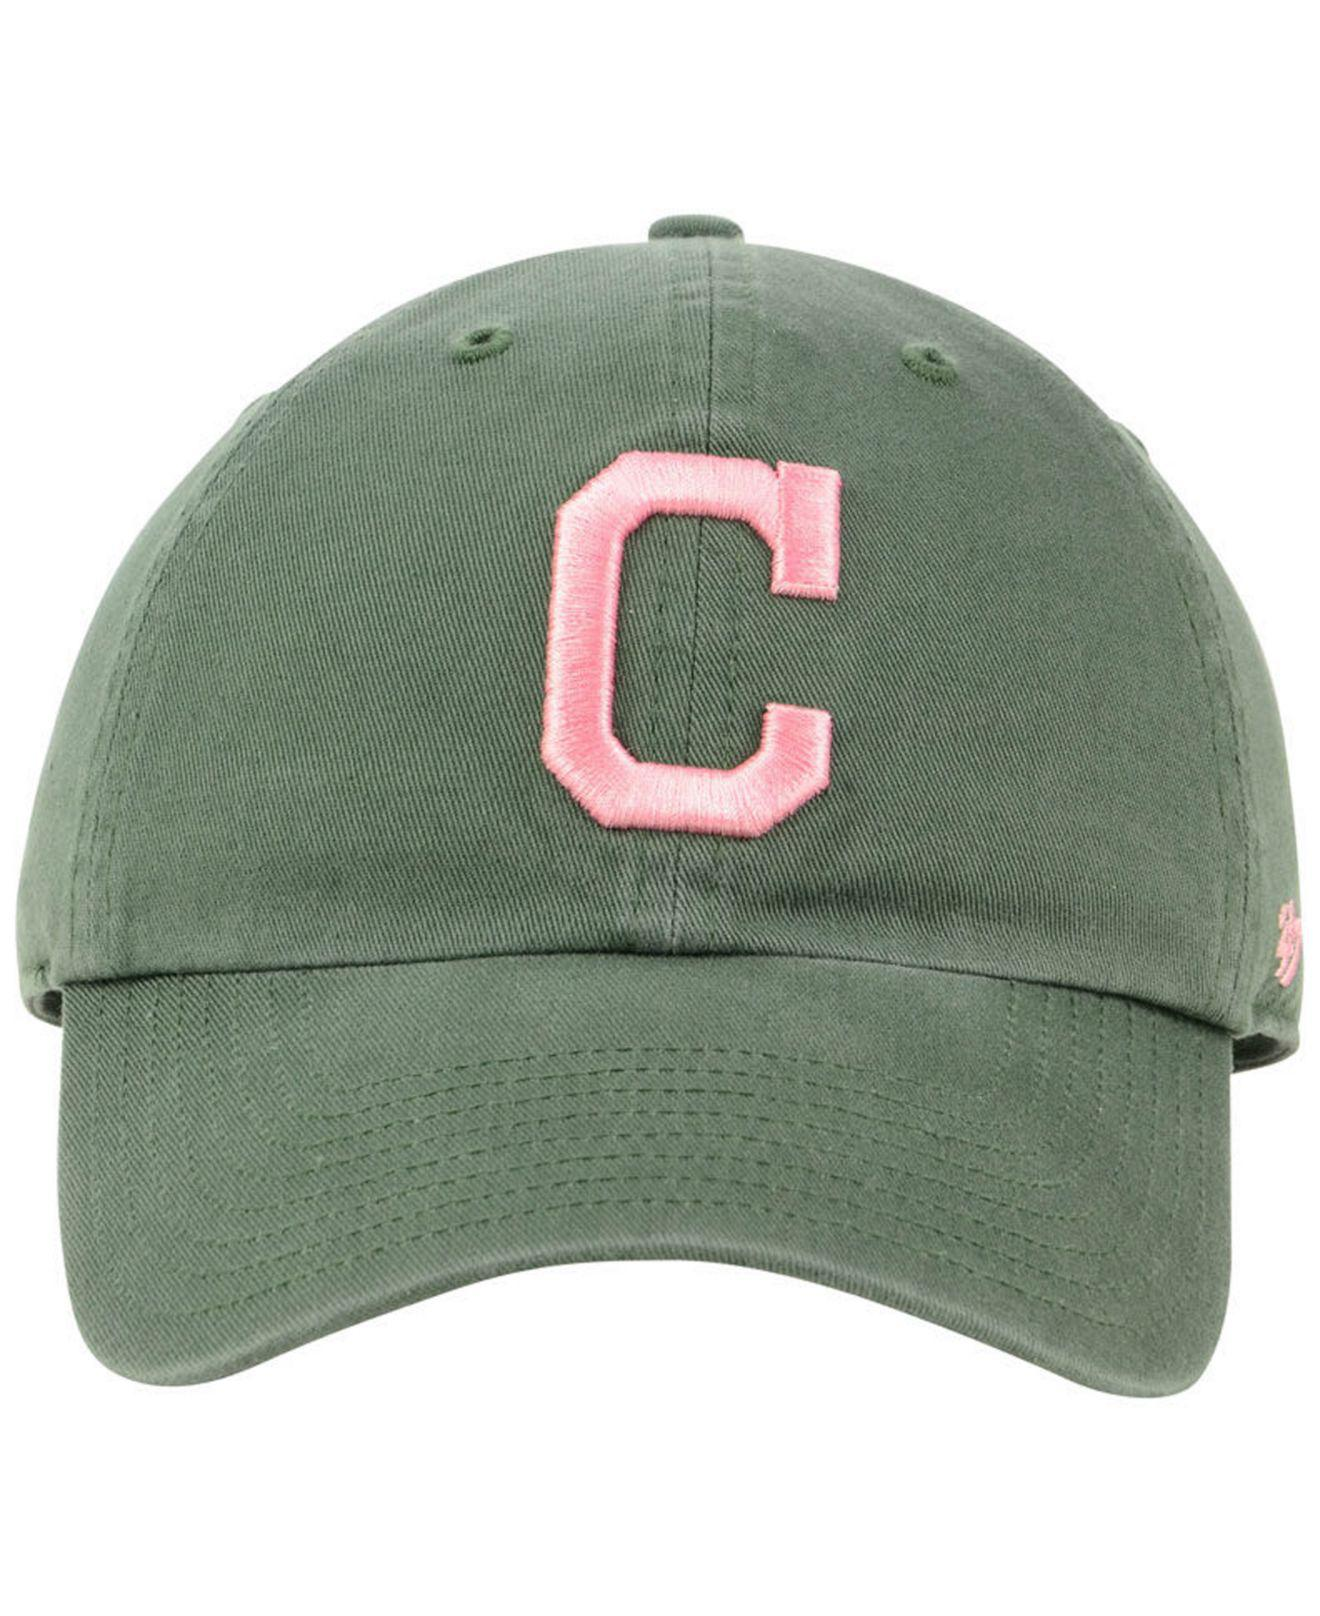 size 40 66143 9c554 ... official store lyst 47 brand cleveland indians moss pink clean up cap  in green for men